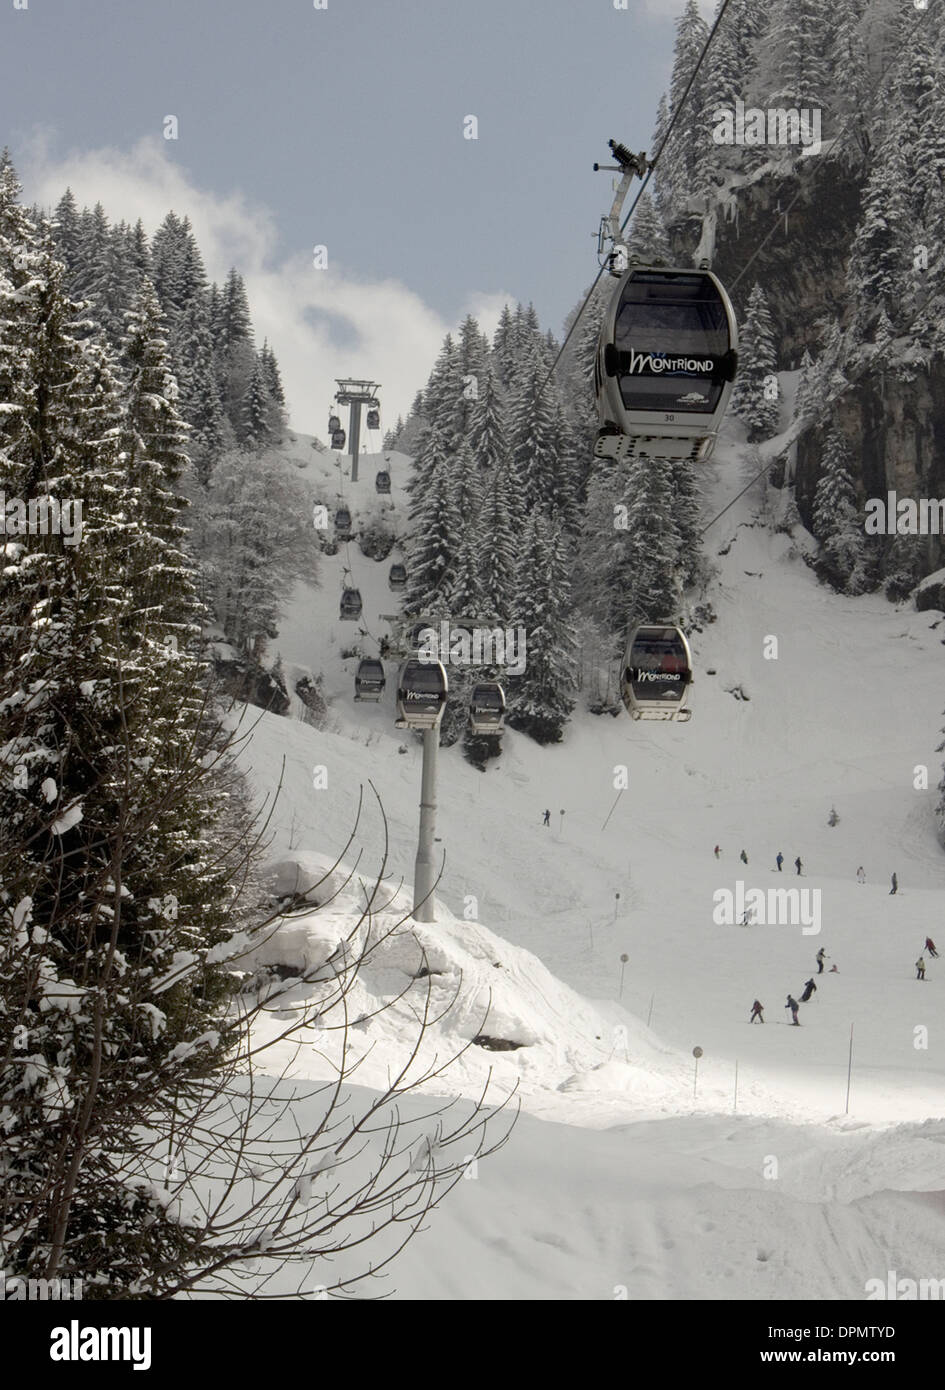 Ardent ski lift morzine webcam